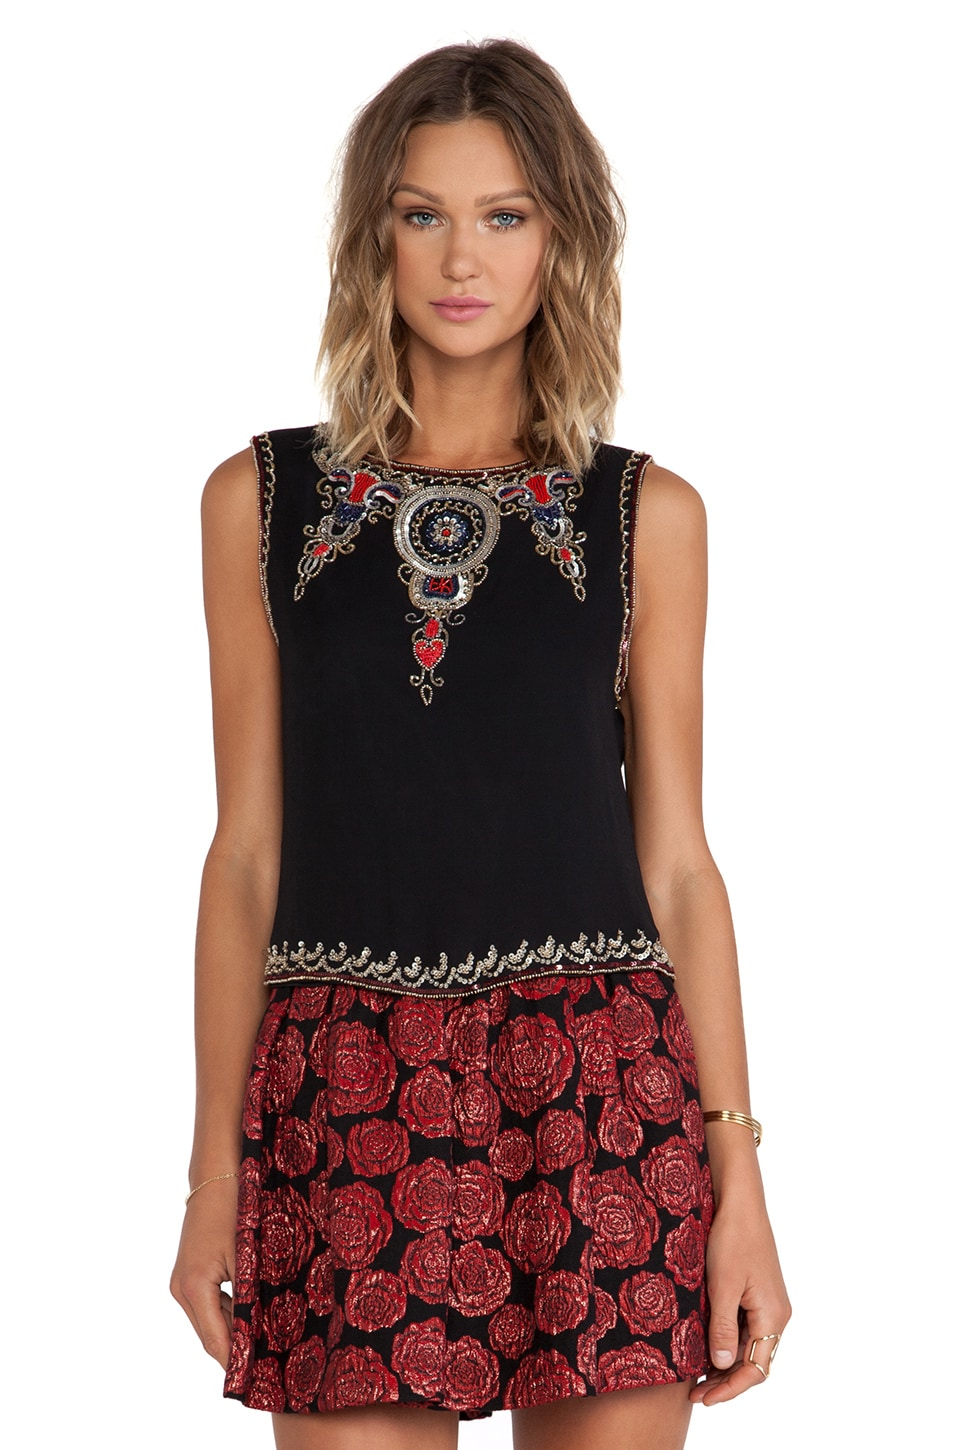 Alice + Olivia Cecillie Embellished Crop Top in Black Multi